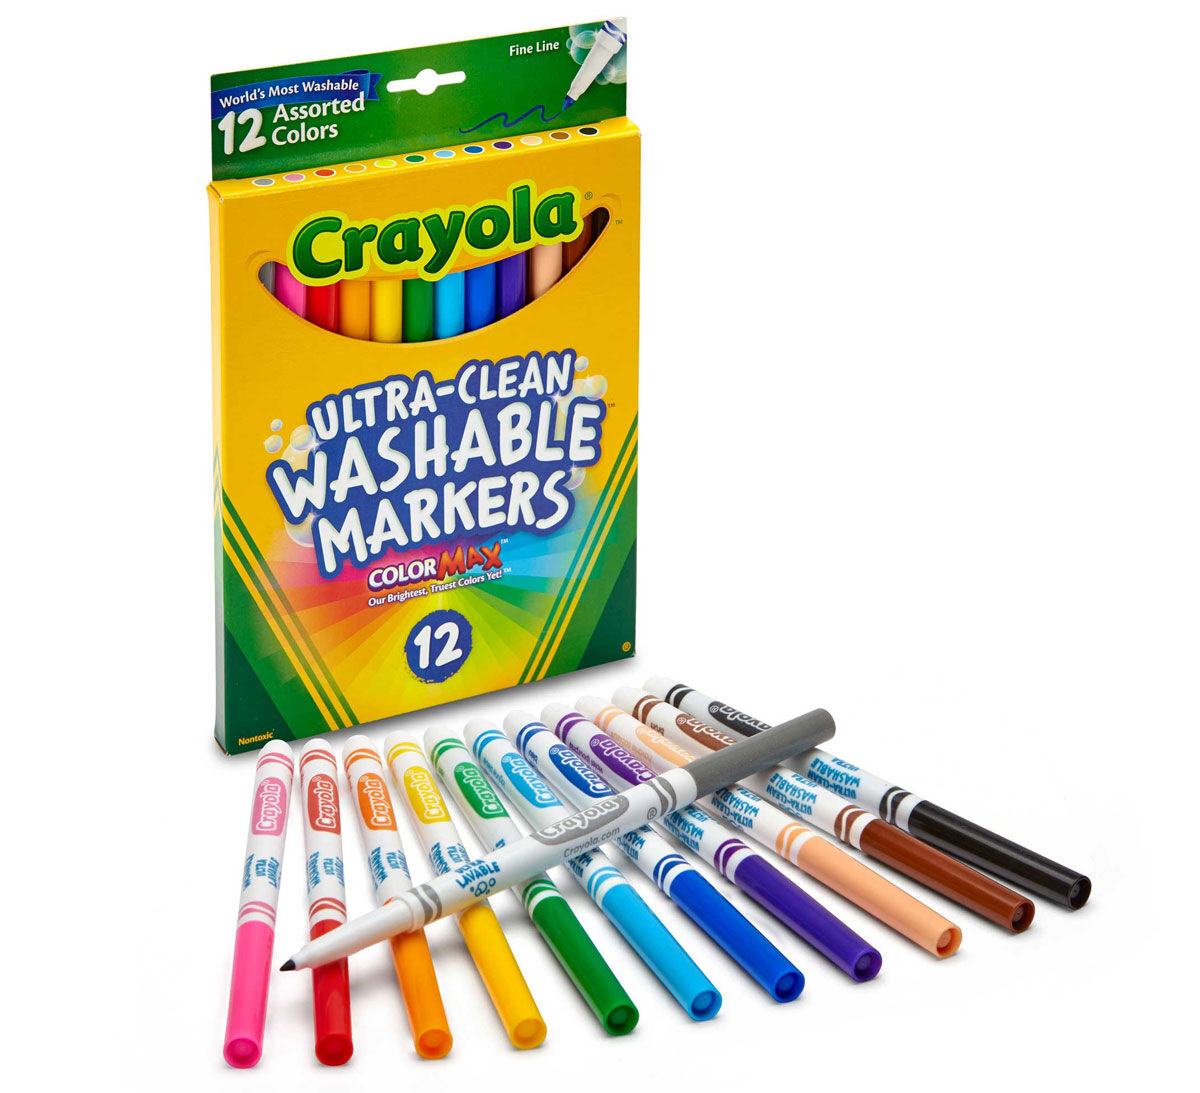 Color Escapes Adult Coloring Kit, Nature - Crayola 14.5.0.8